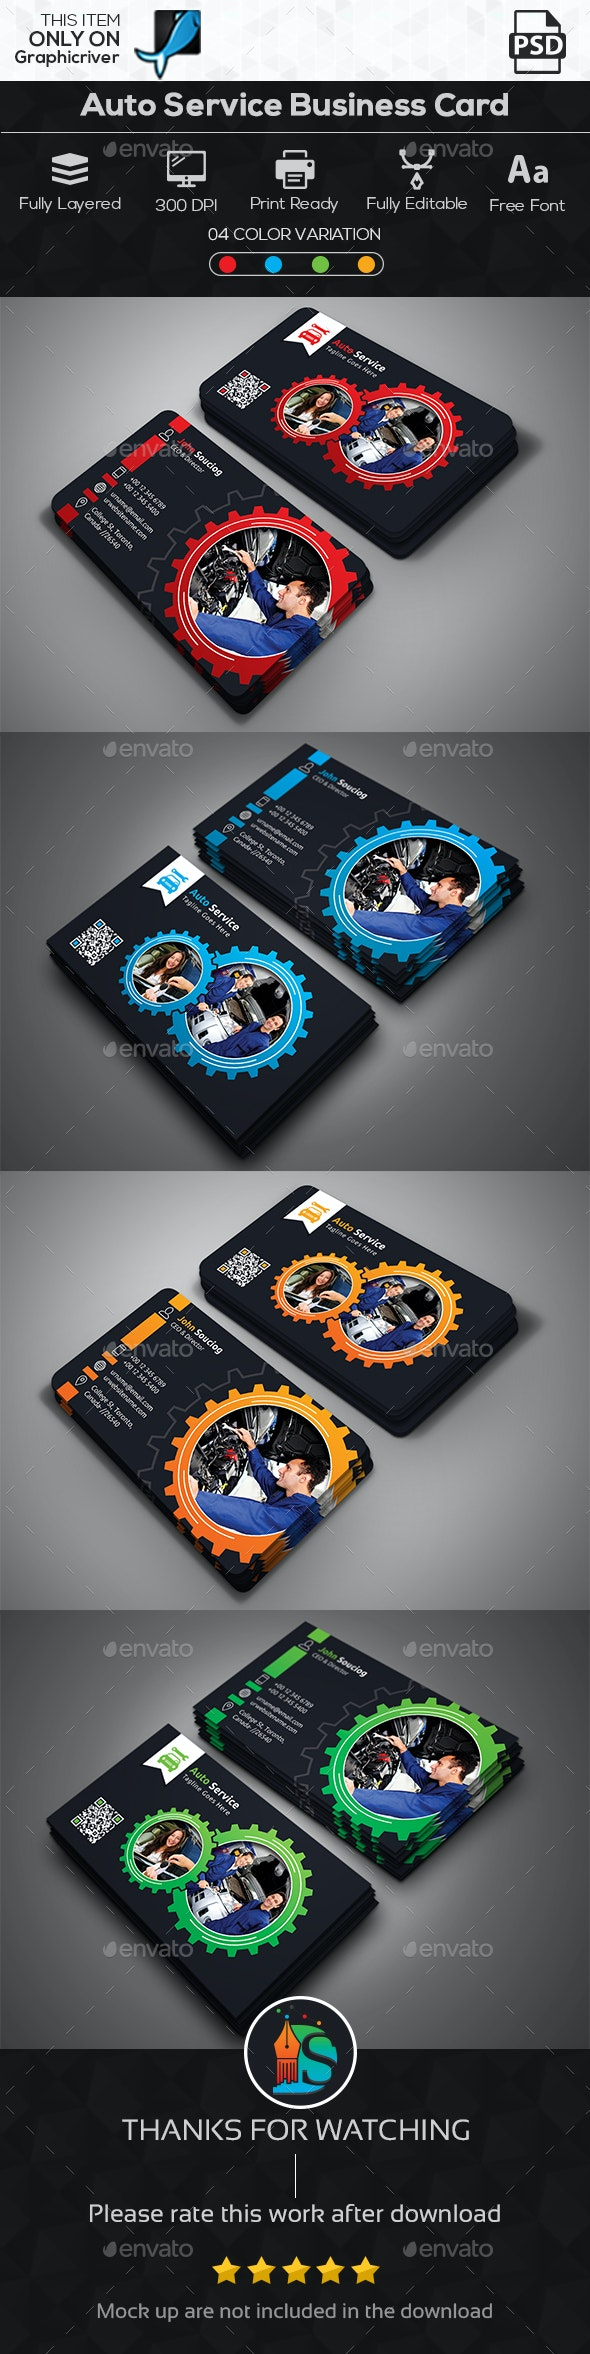 Auto Service Business Card - Industry Specific Business Cards